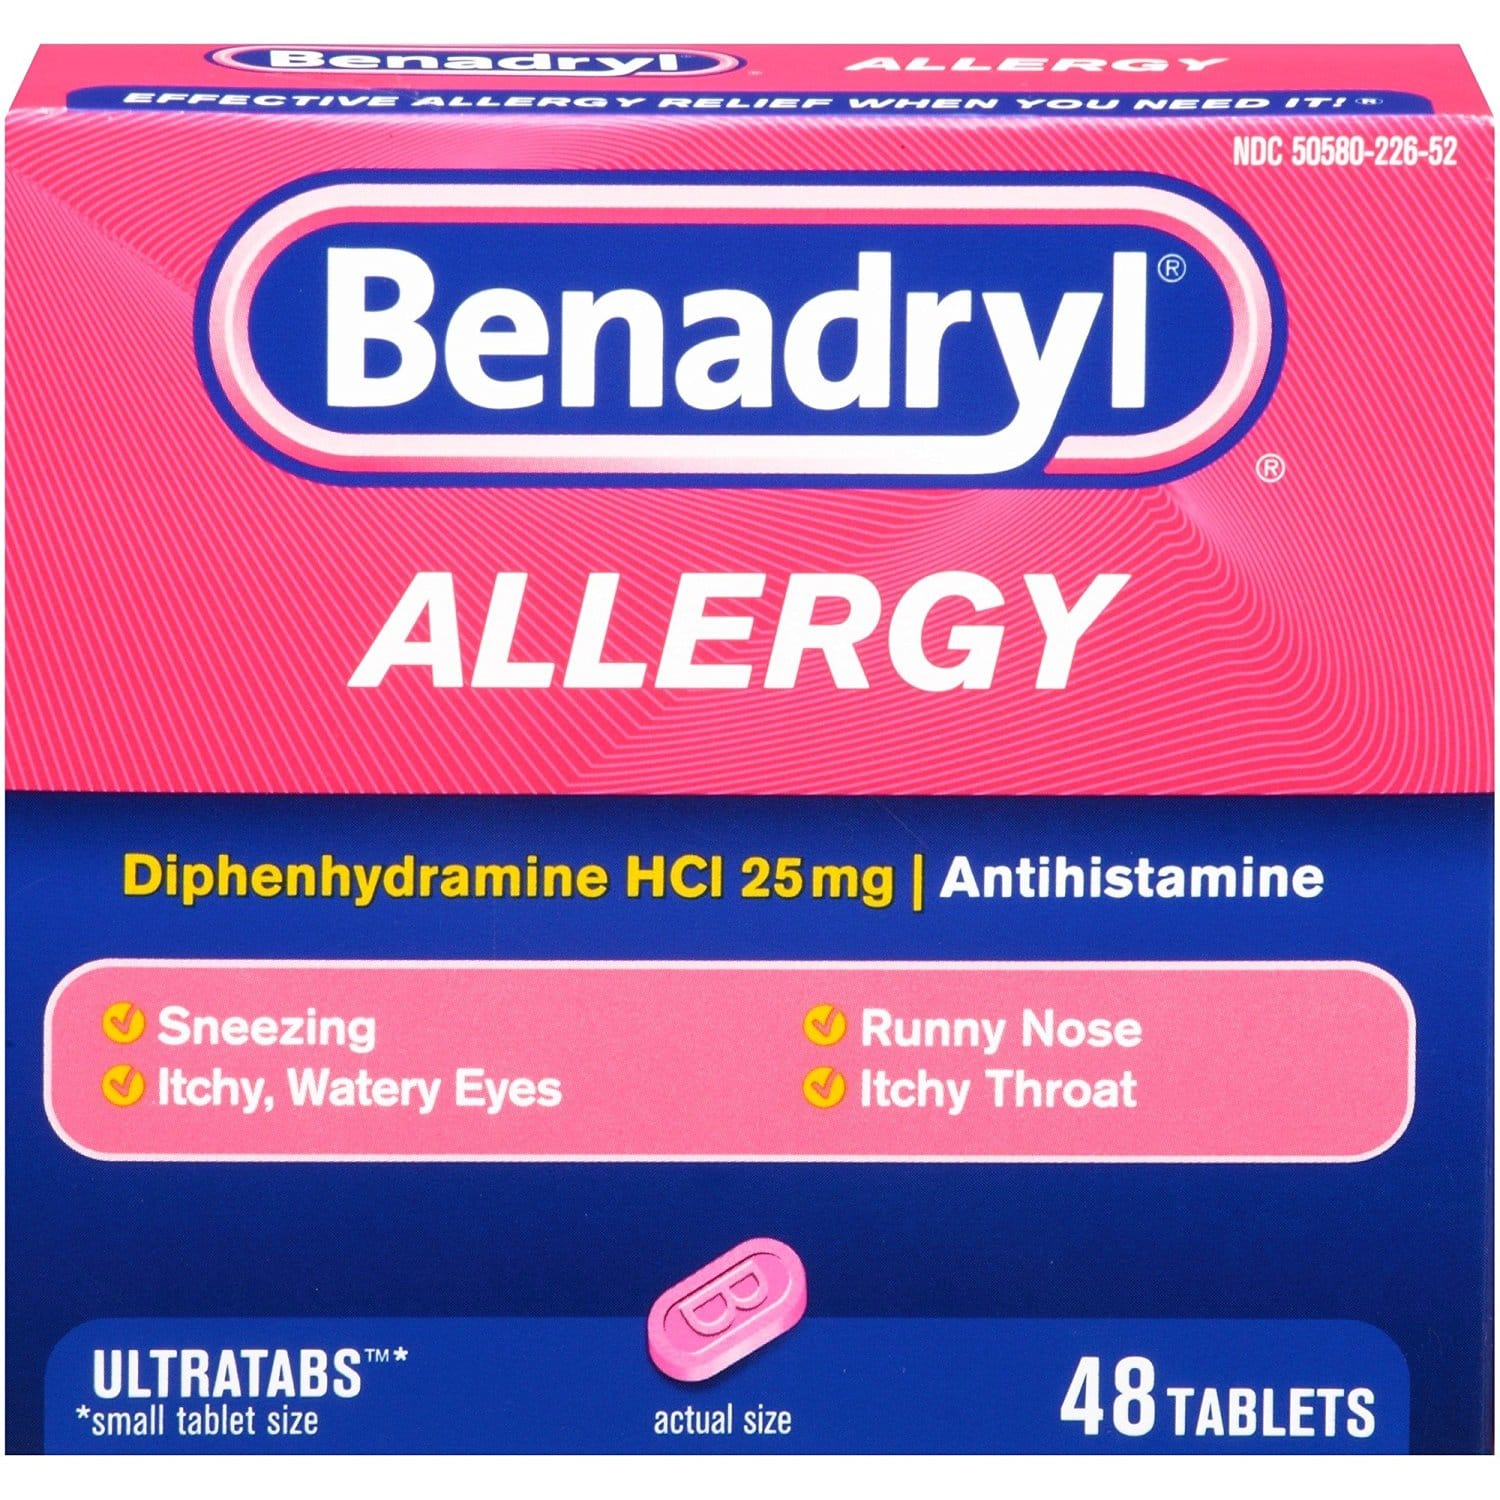 48-ct Benadryl Allergy Ultratab Tablets: $3.50 (or $3.13) + FS @ Amazon S&S